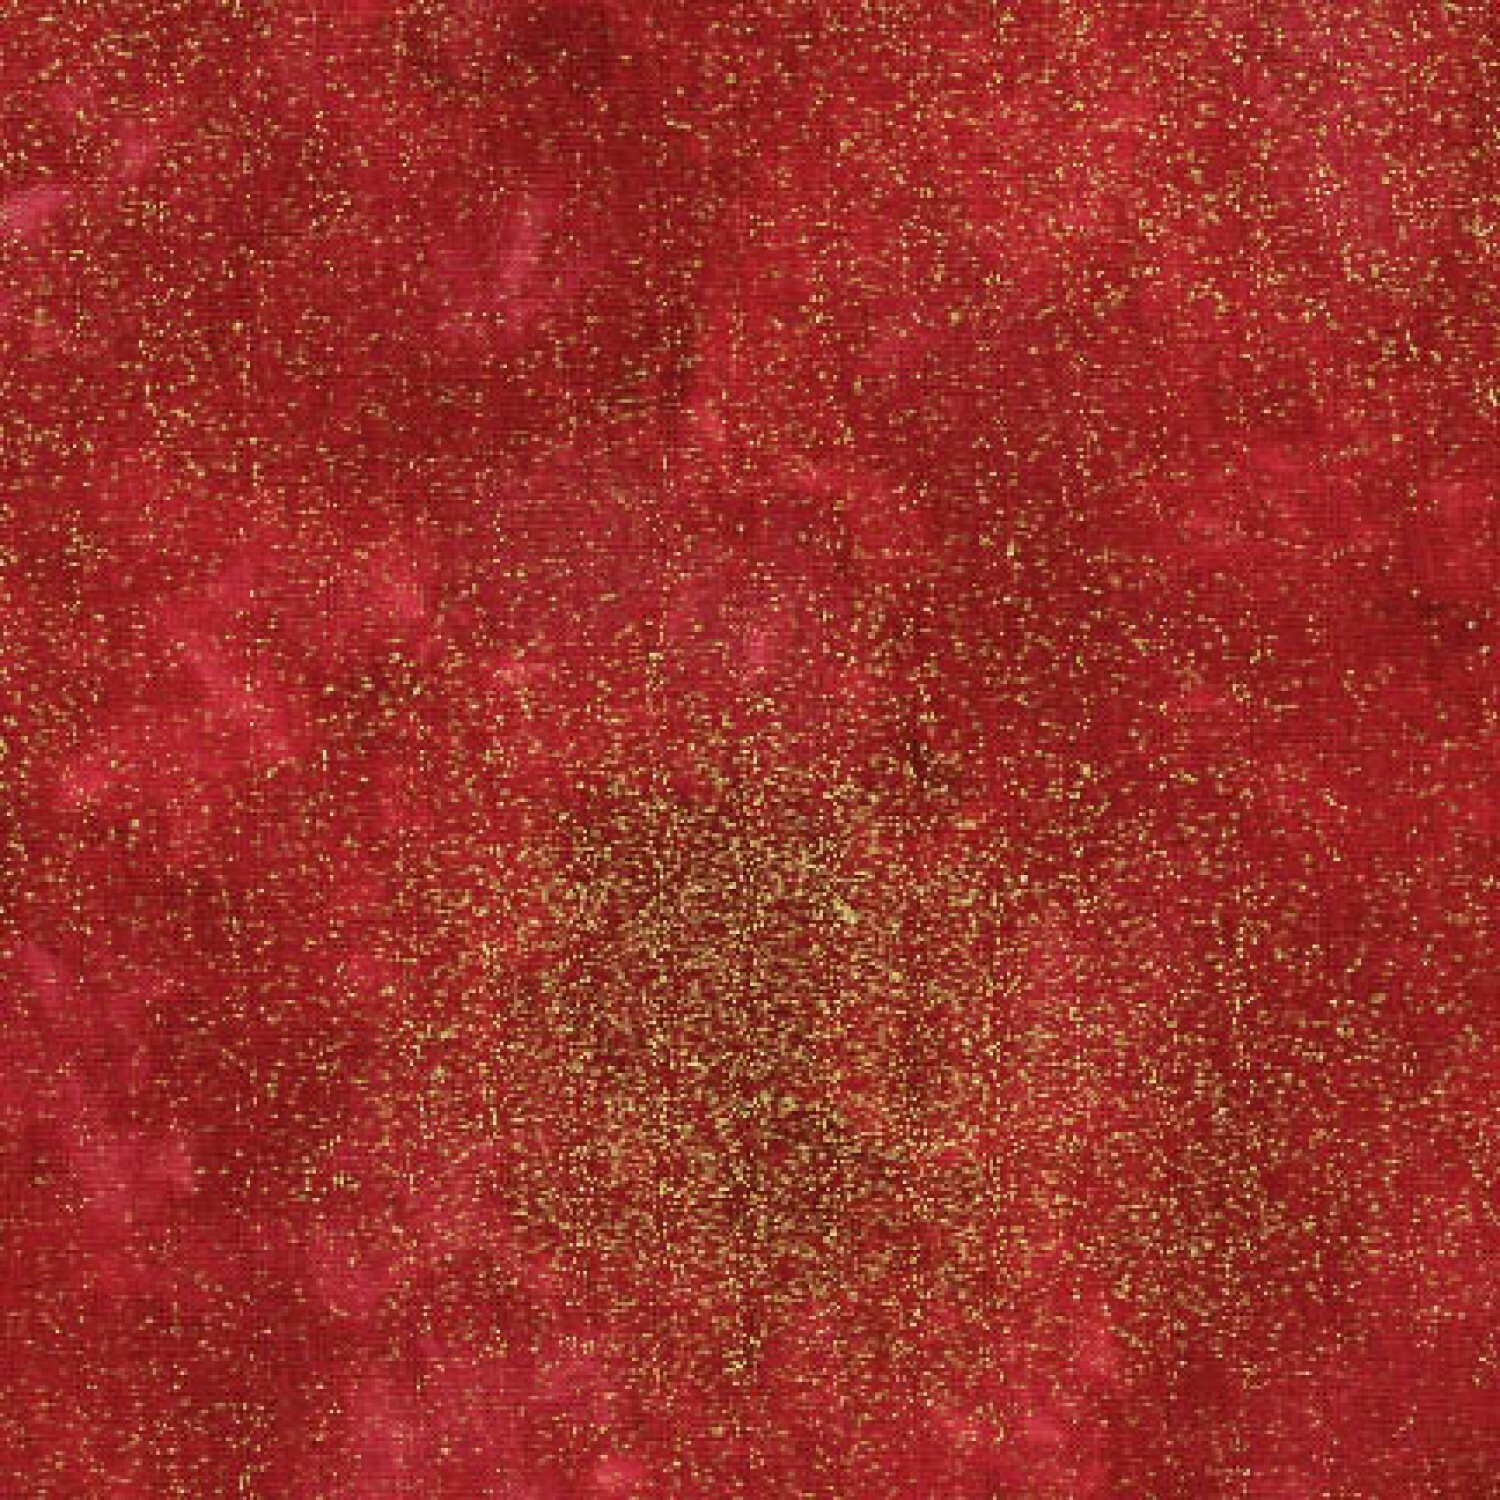 Red Shimmer - 1/2m cut 56404